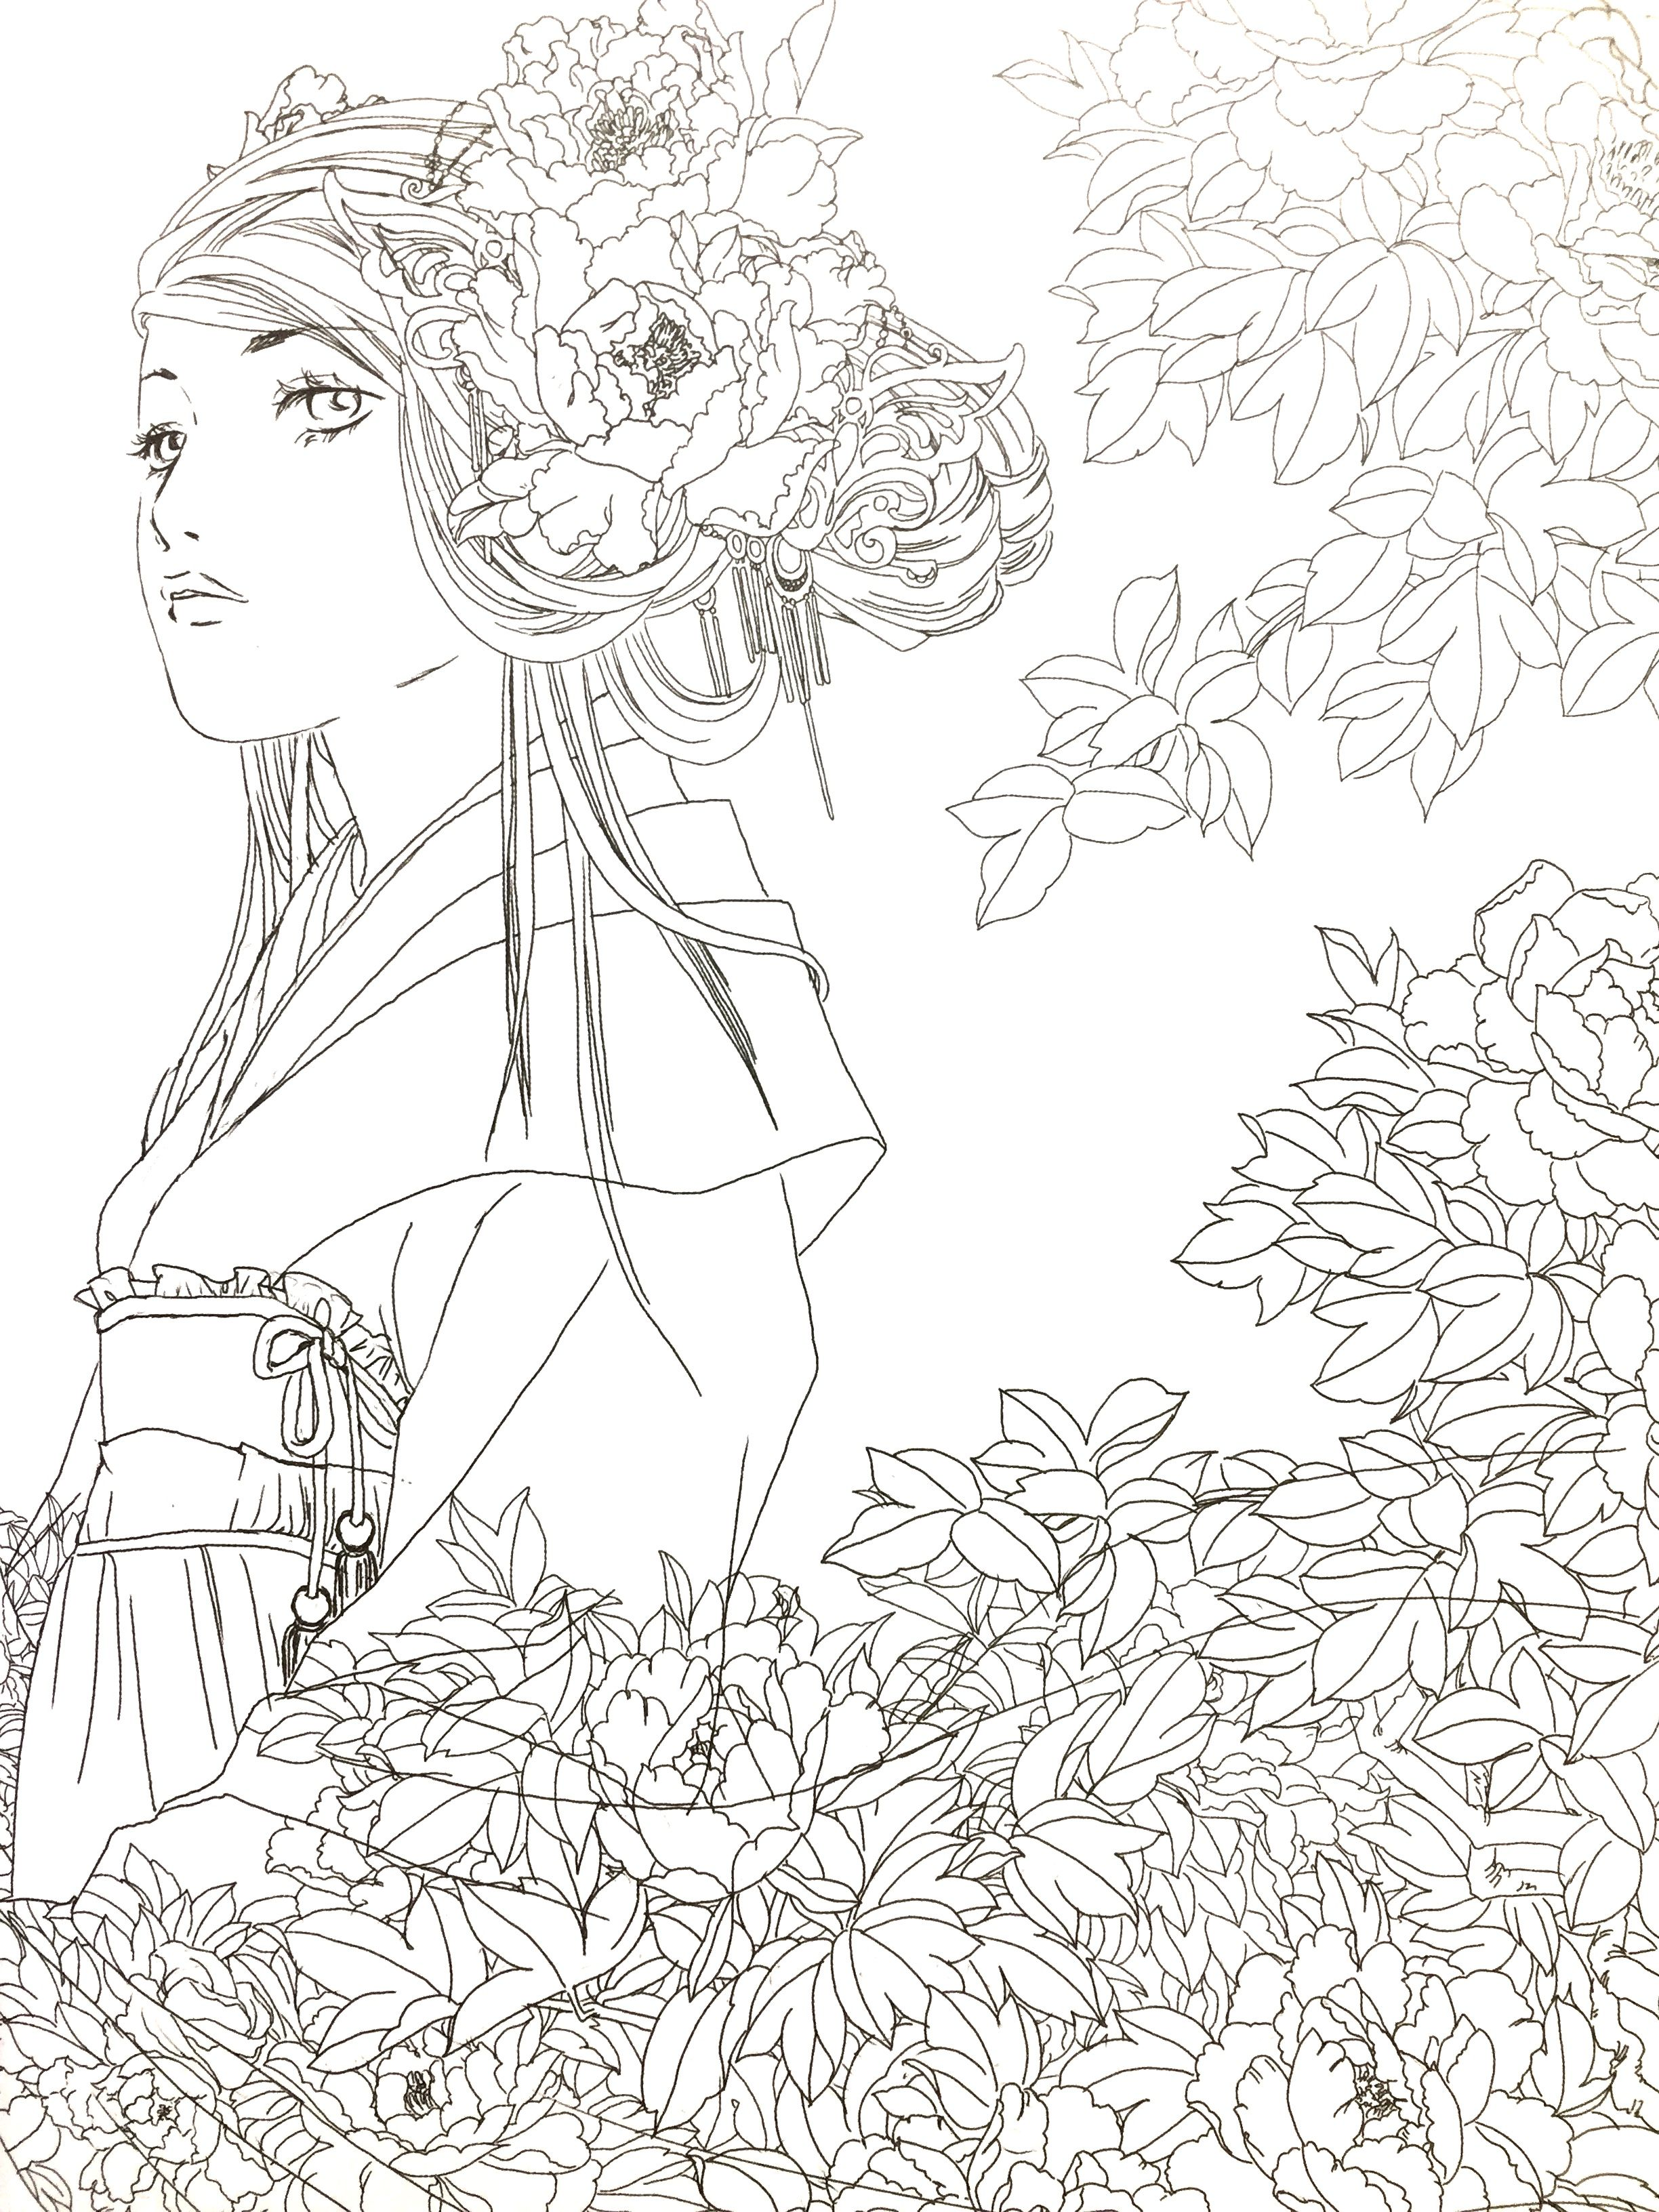 Hers - Chinese Antiquity coloring book | Pinterest | Libros para ...